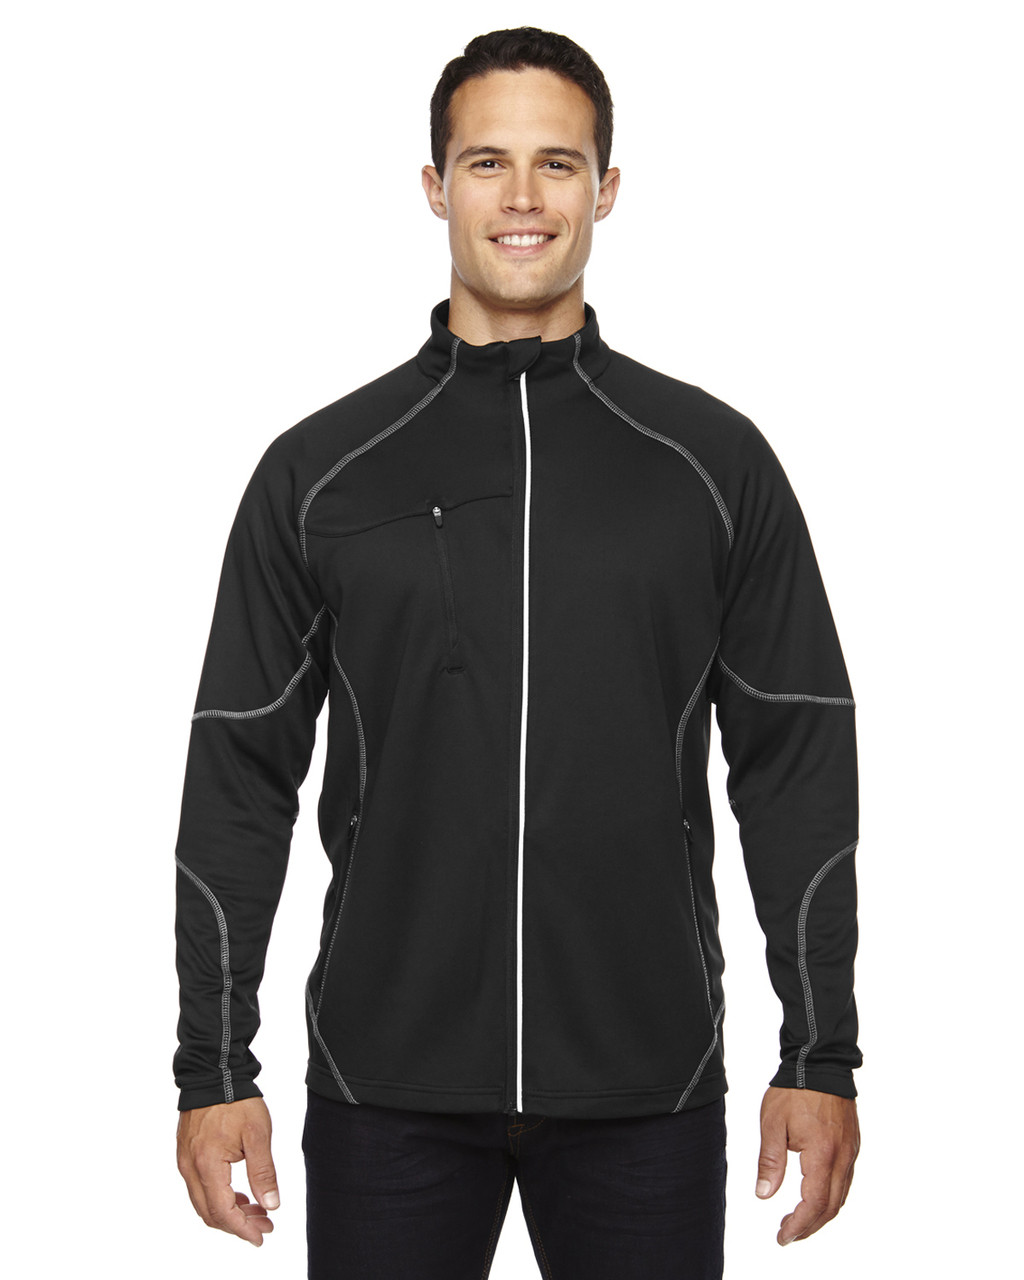 Black - 88174 Ash City - North End Men's Gravity Performance Fleece Jacket | Blankclothing.ca